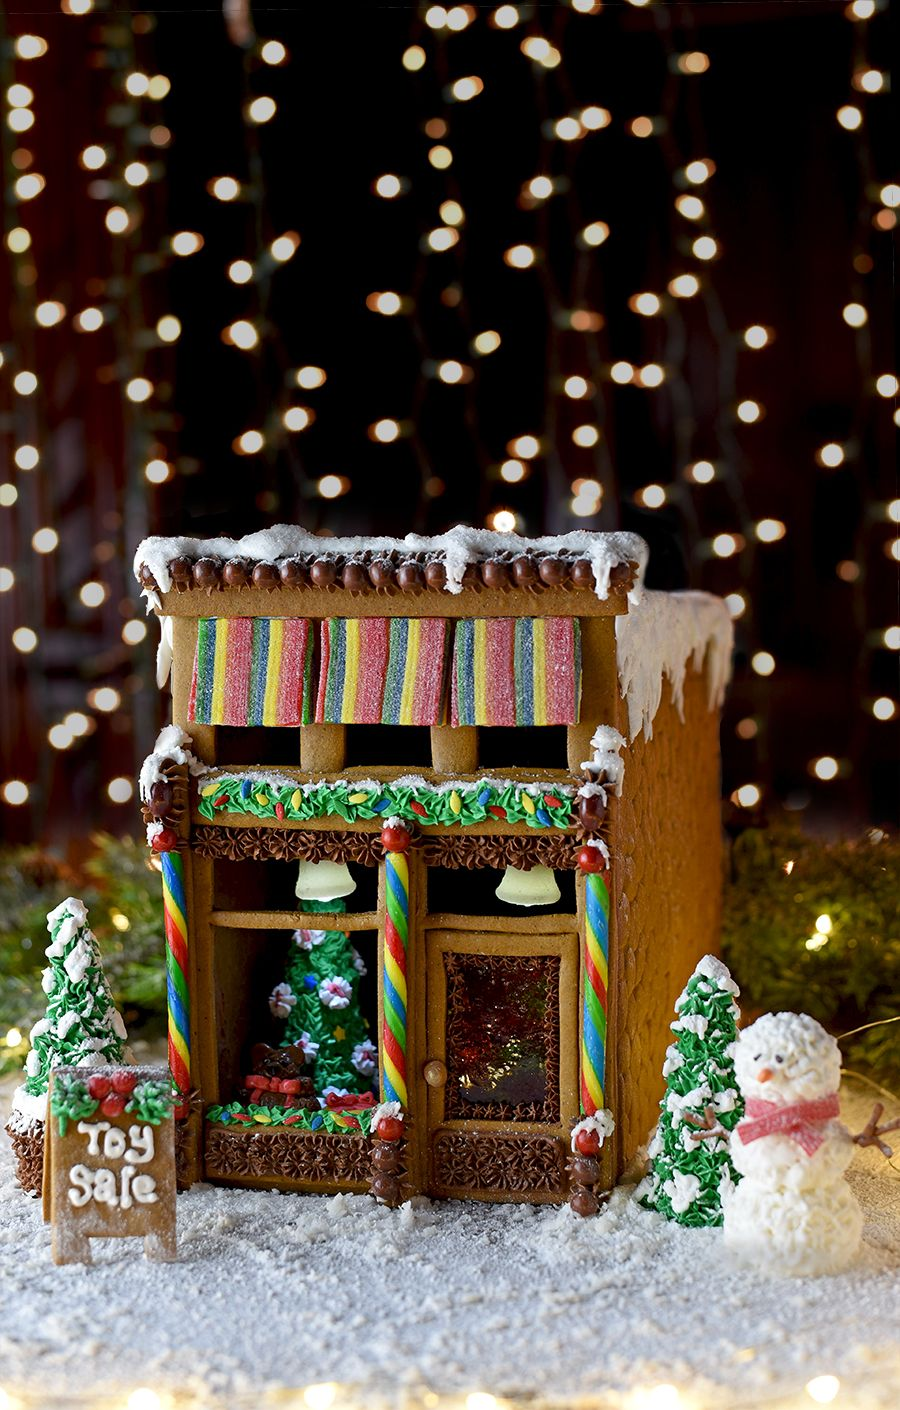 Best Gingerbread House Ideas How to Make a Gingerbread House